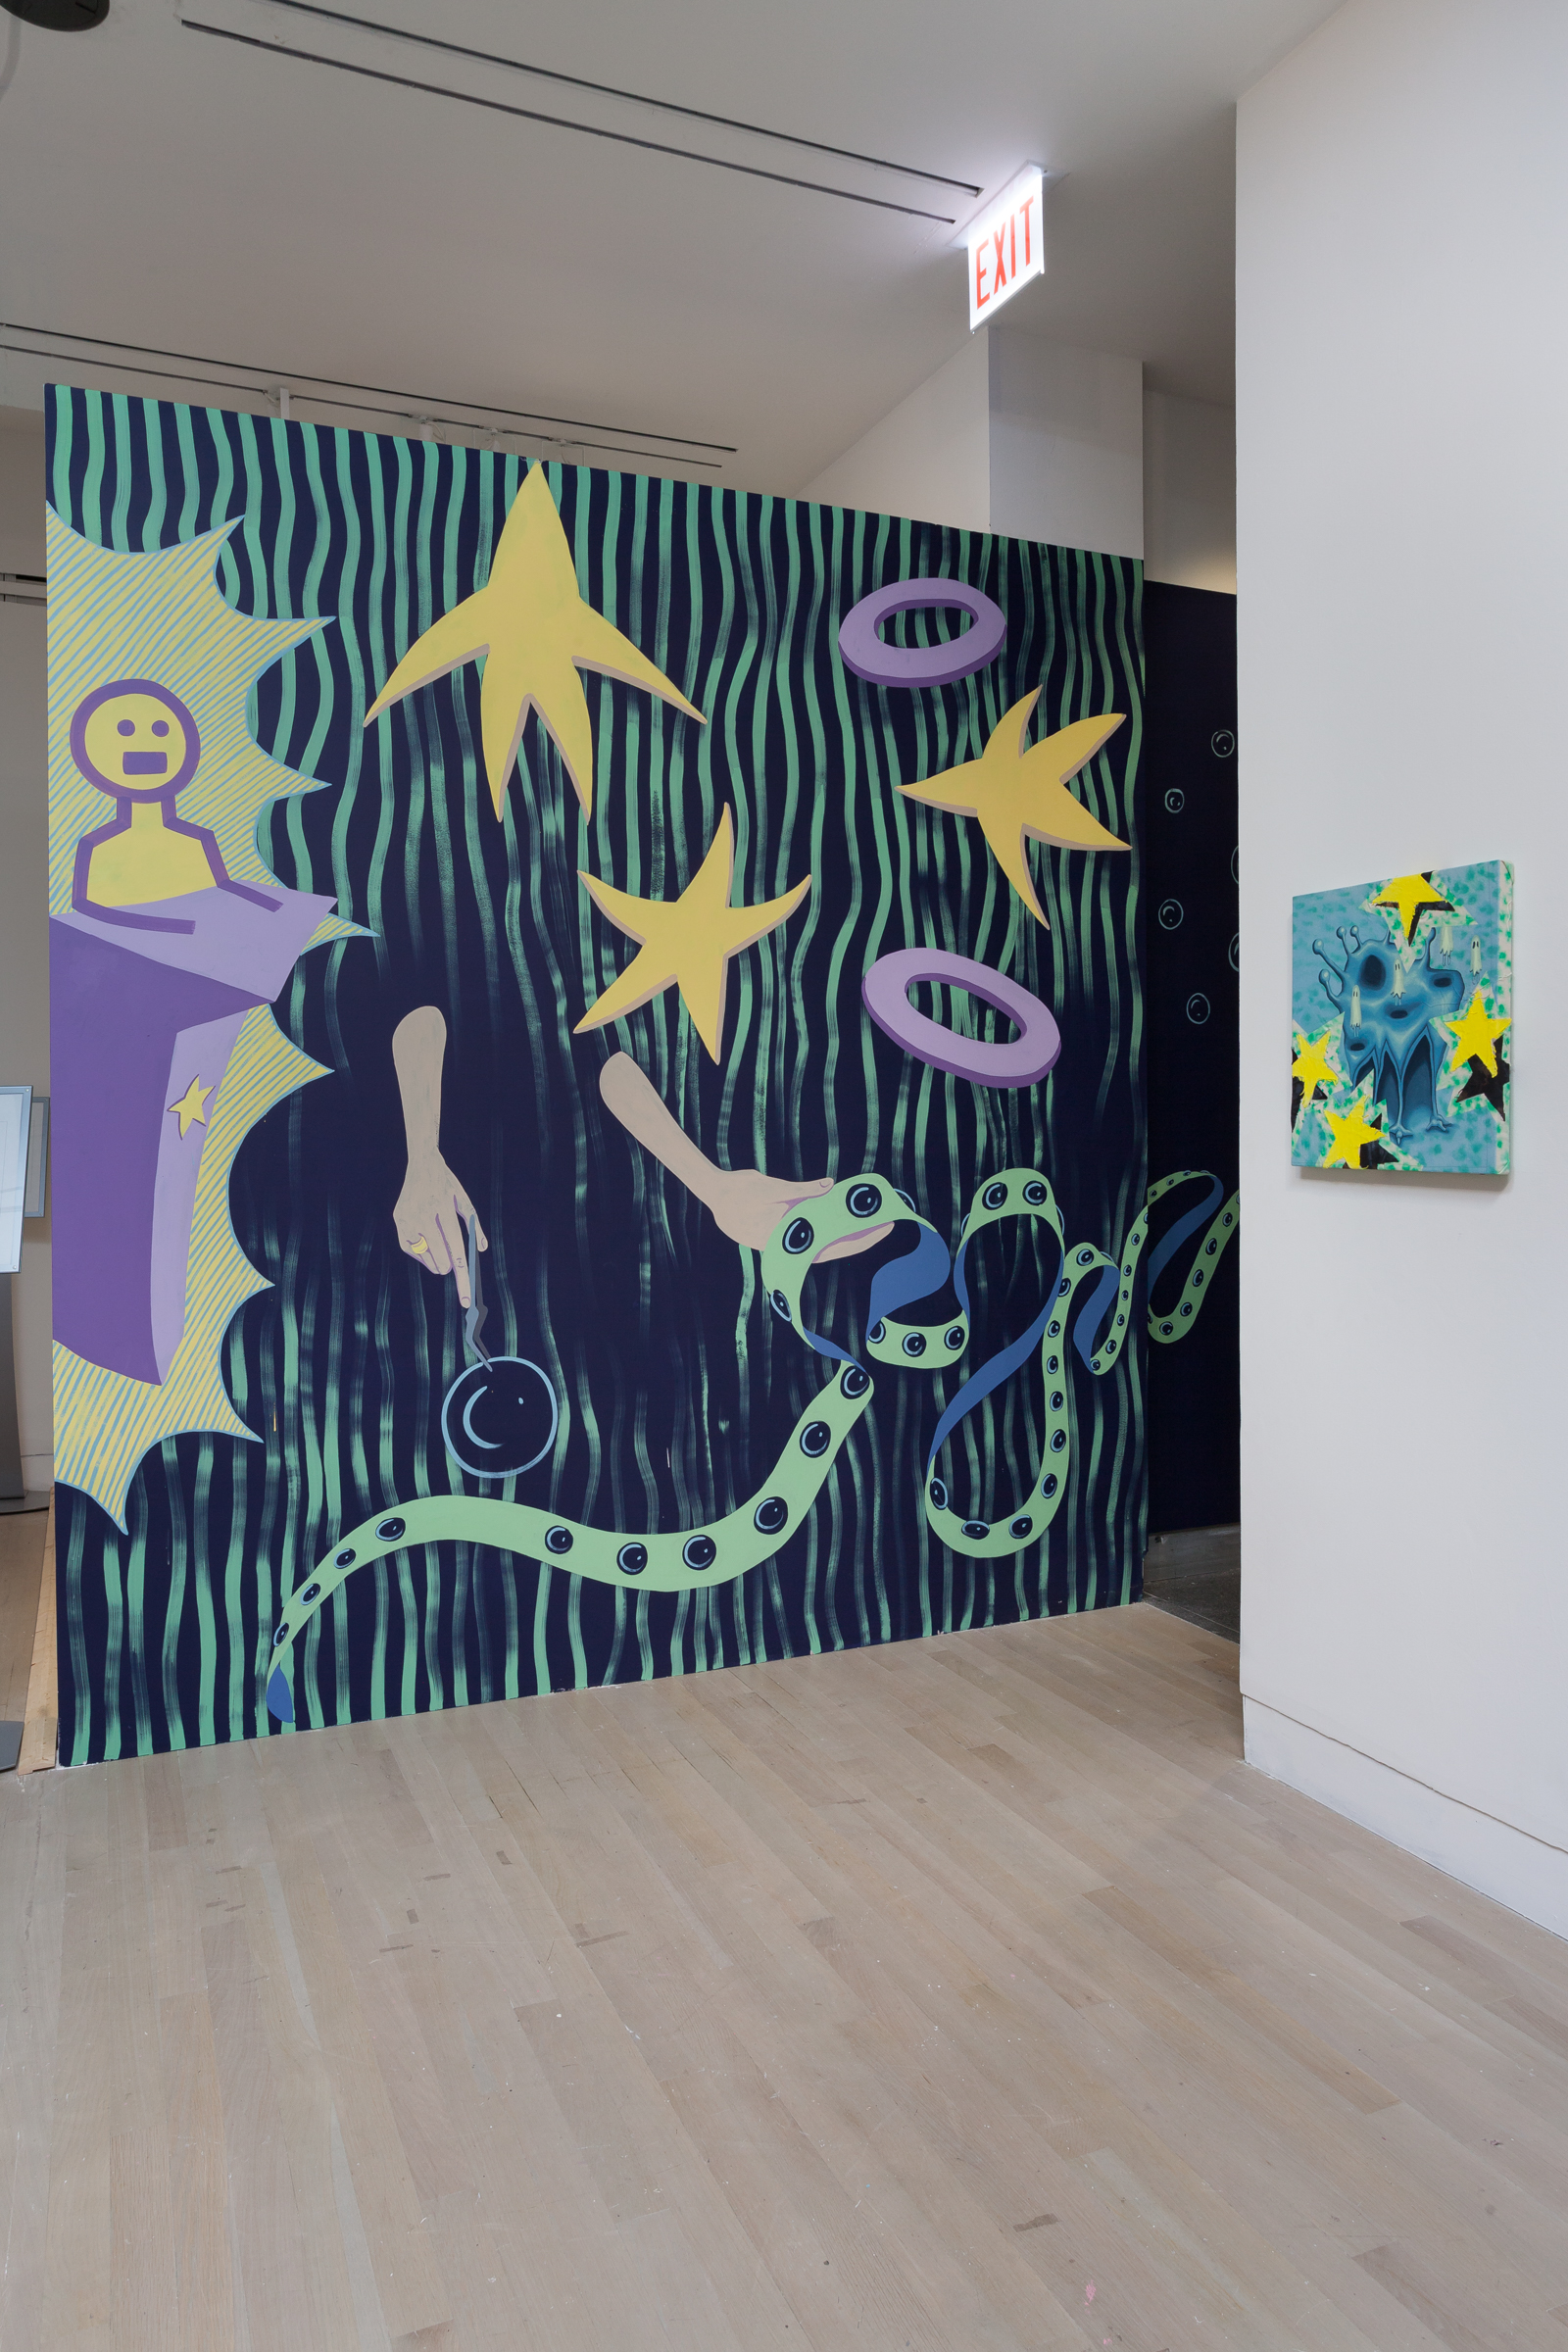 The Guardians of Alternate Dimensions (image 1)  2017  Vinyl and acrylic paint on walls| 10 x 13.5 x 23.25 feet  Logan Center Exhibitions